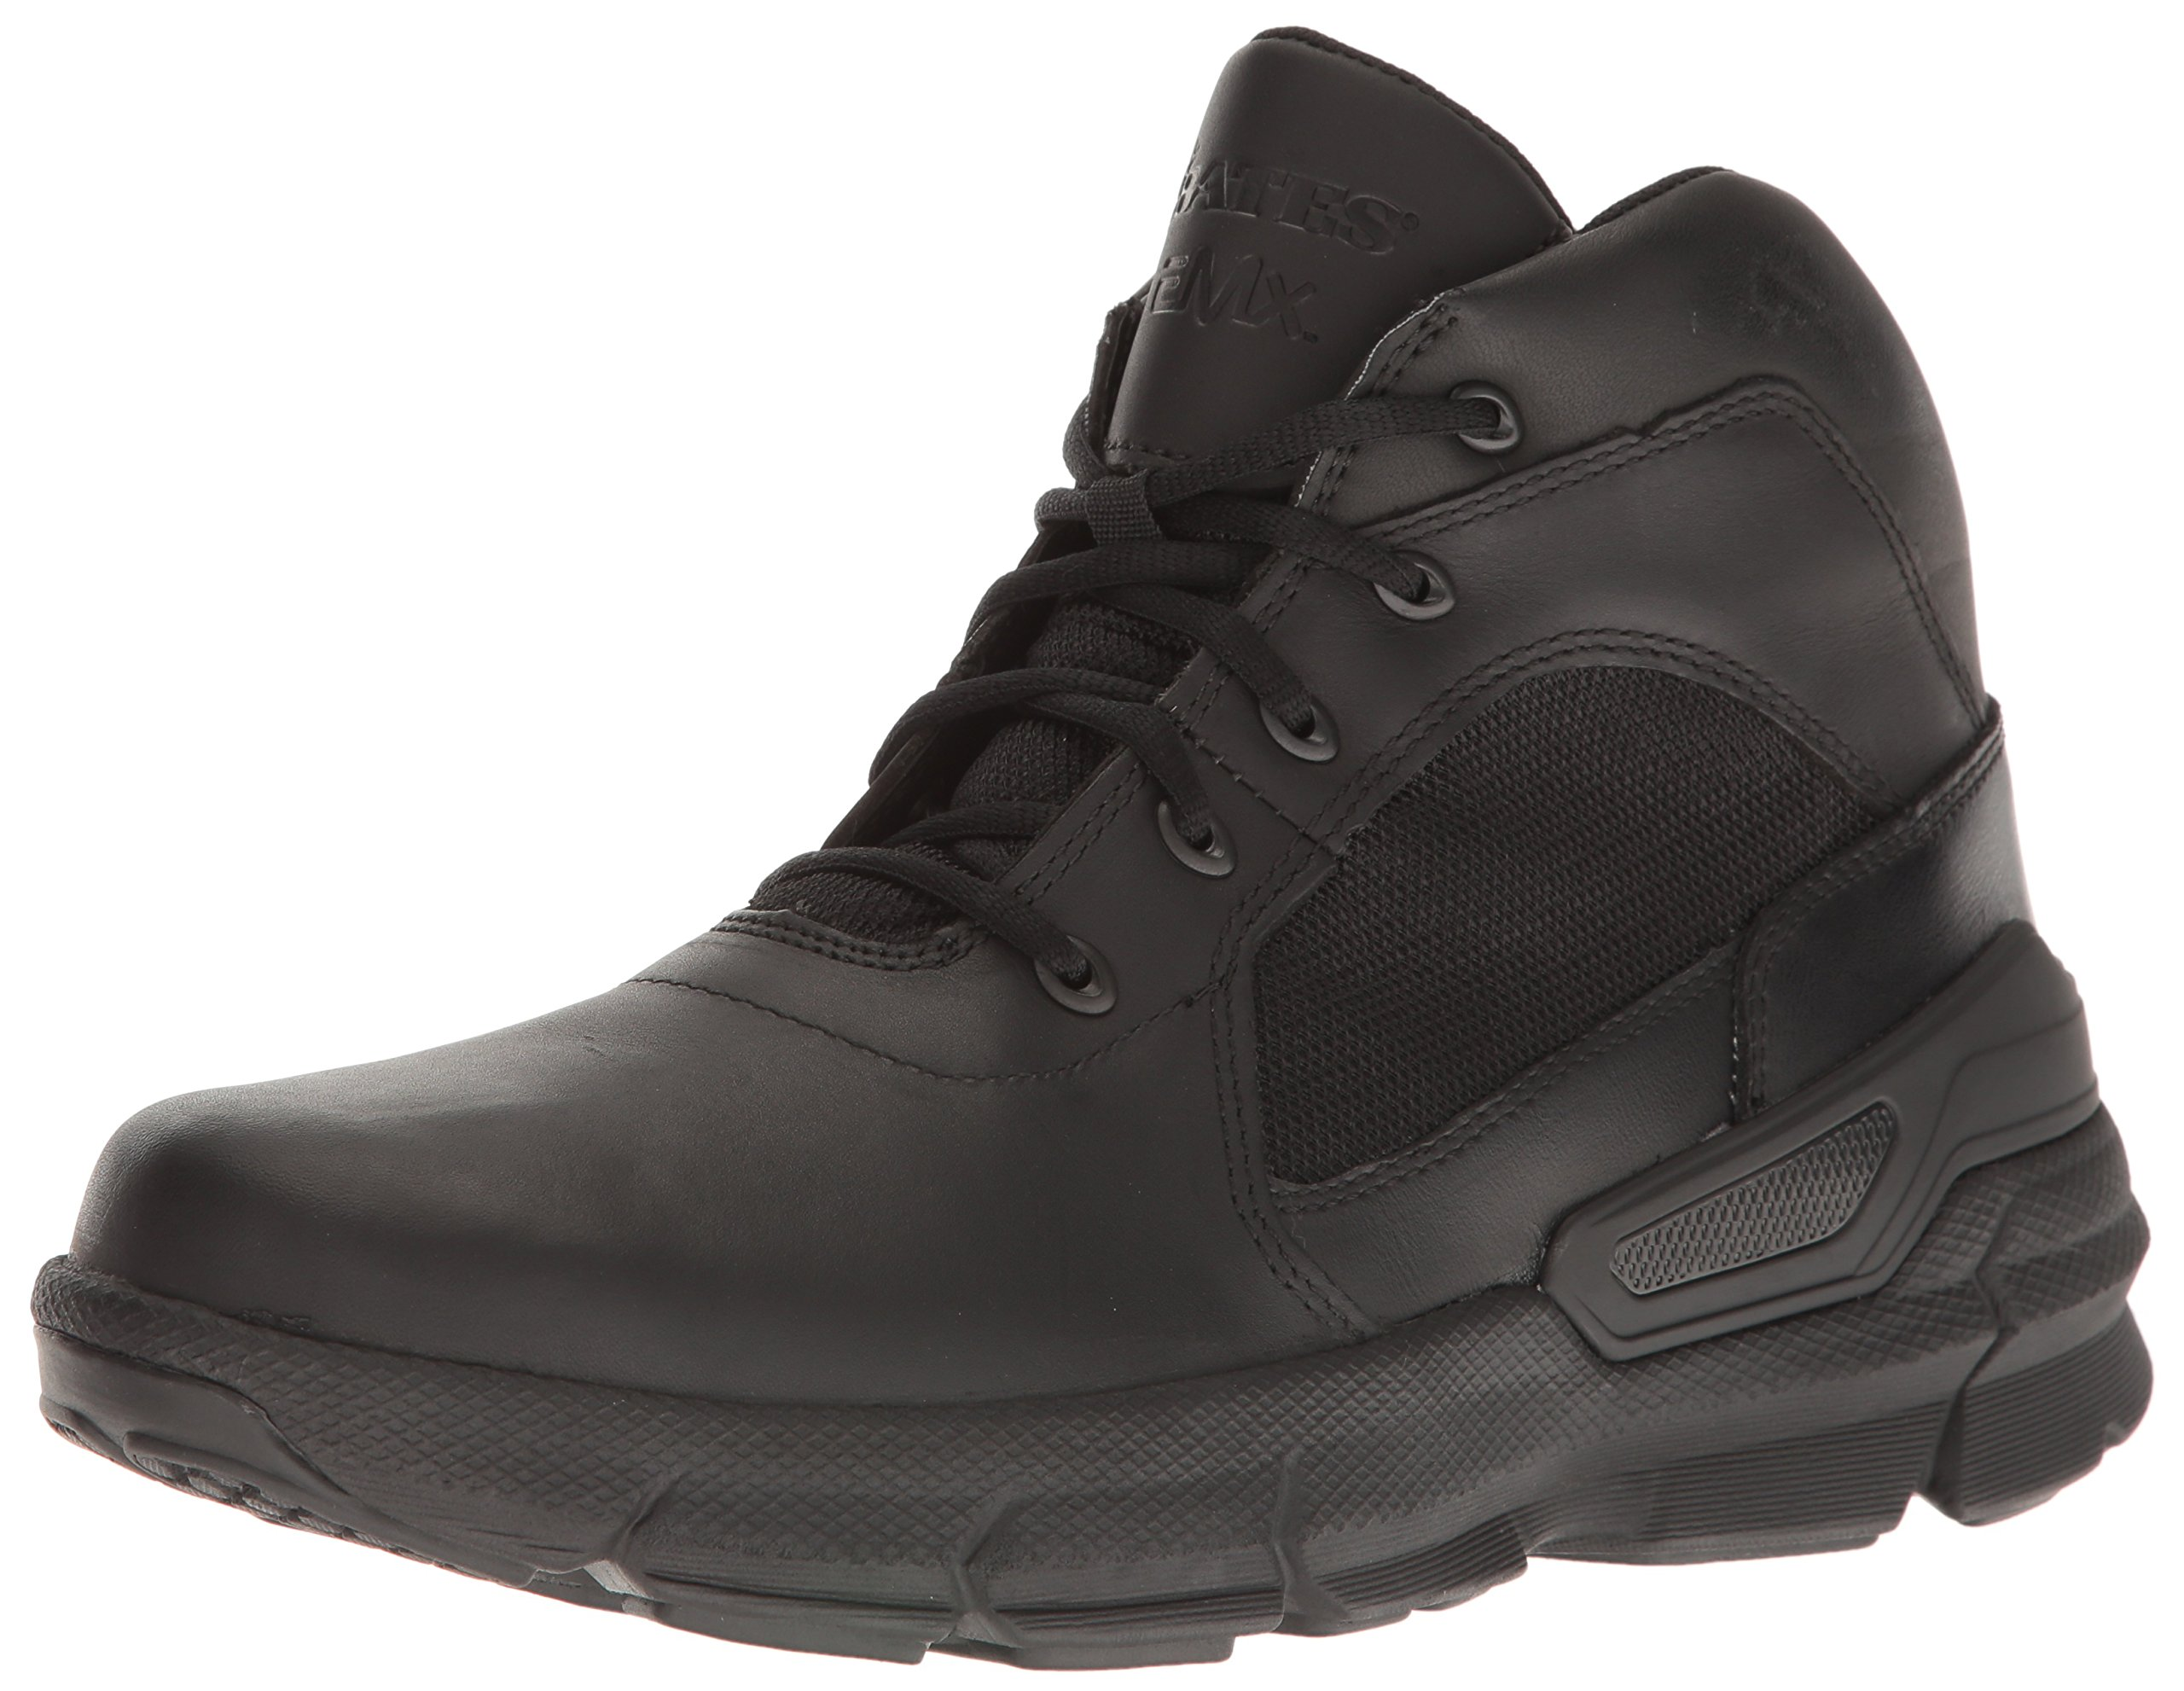 Bates Men's Charge-6 Emx Military and Tactical Boot, Black, 7 M US by Bates